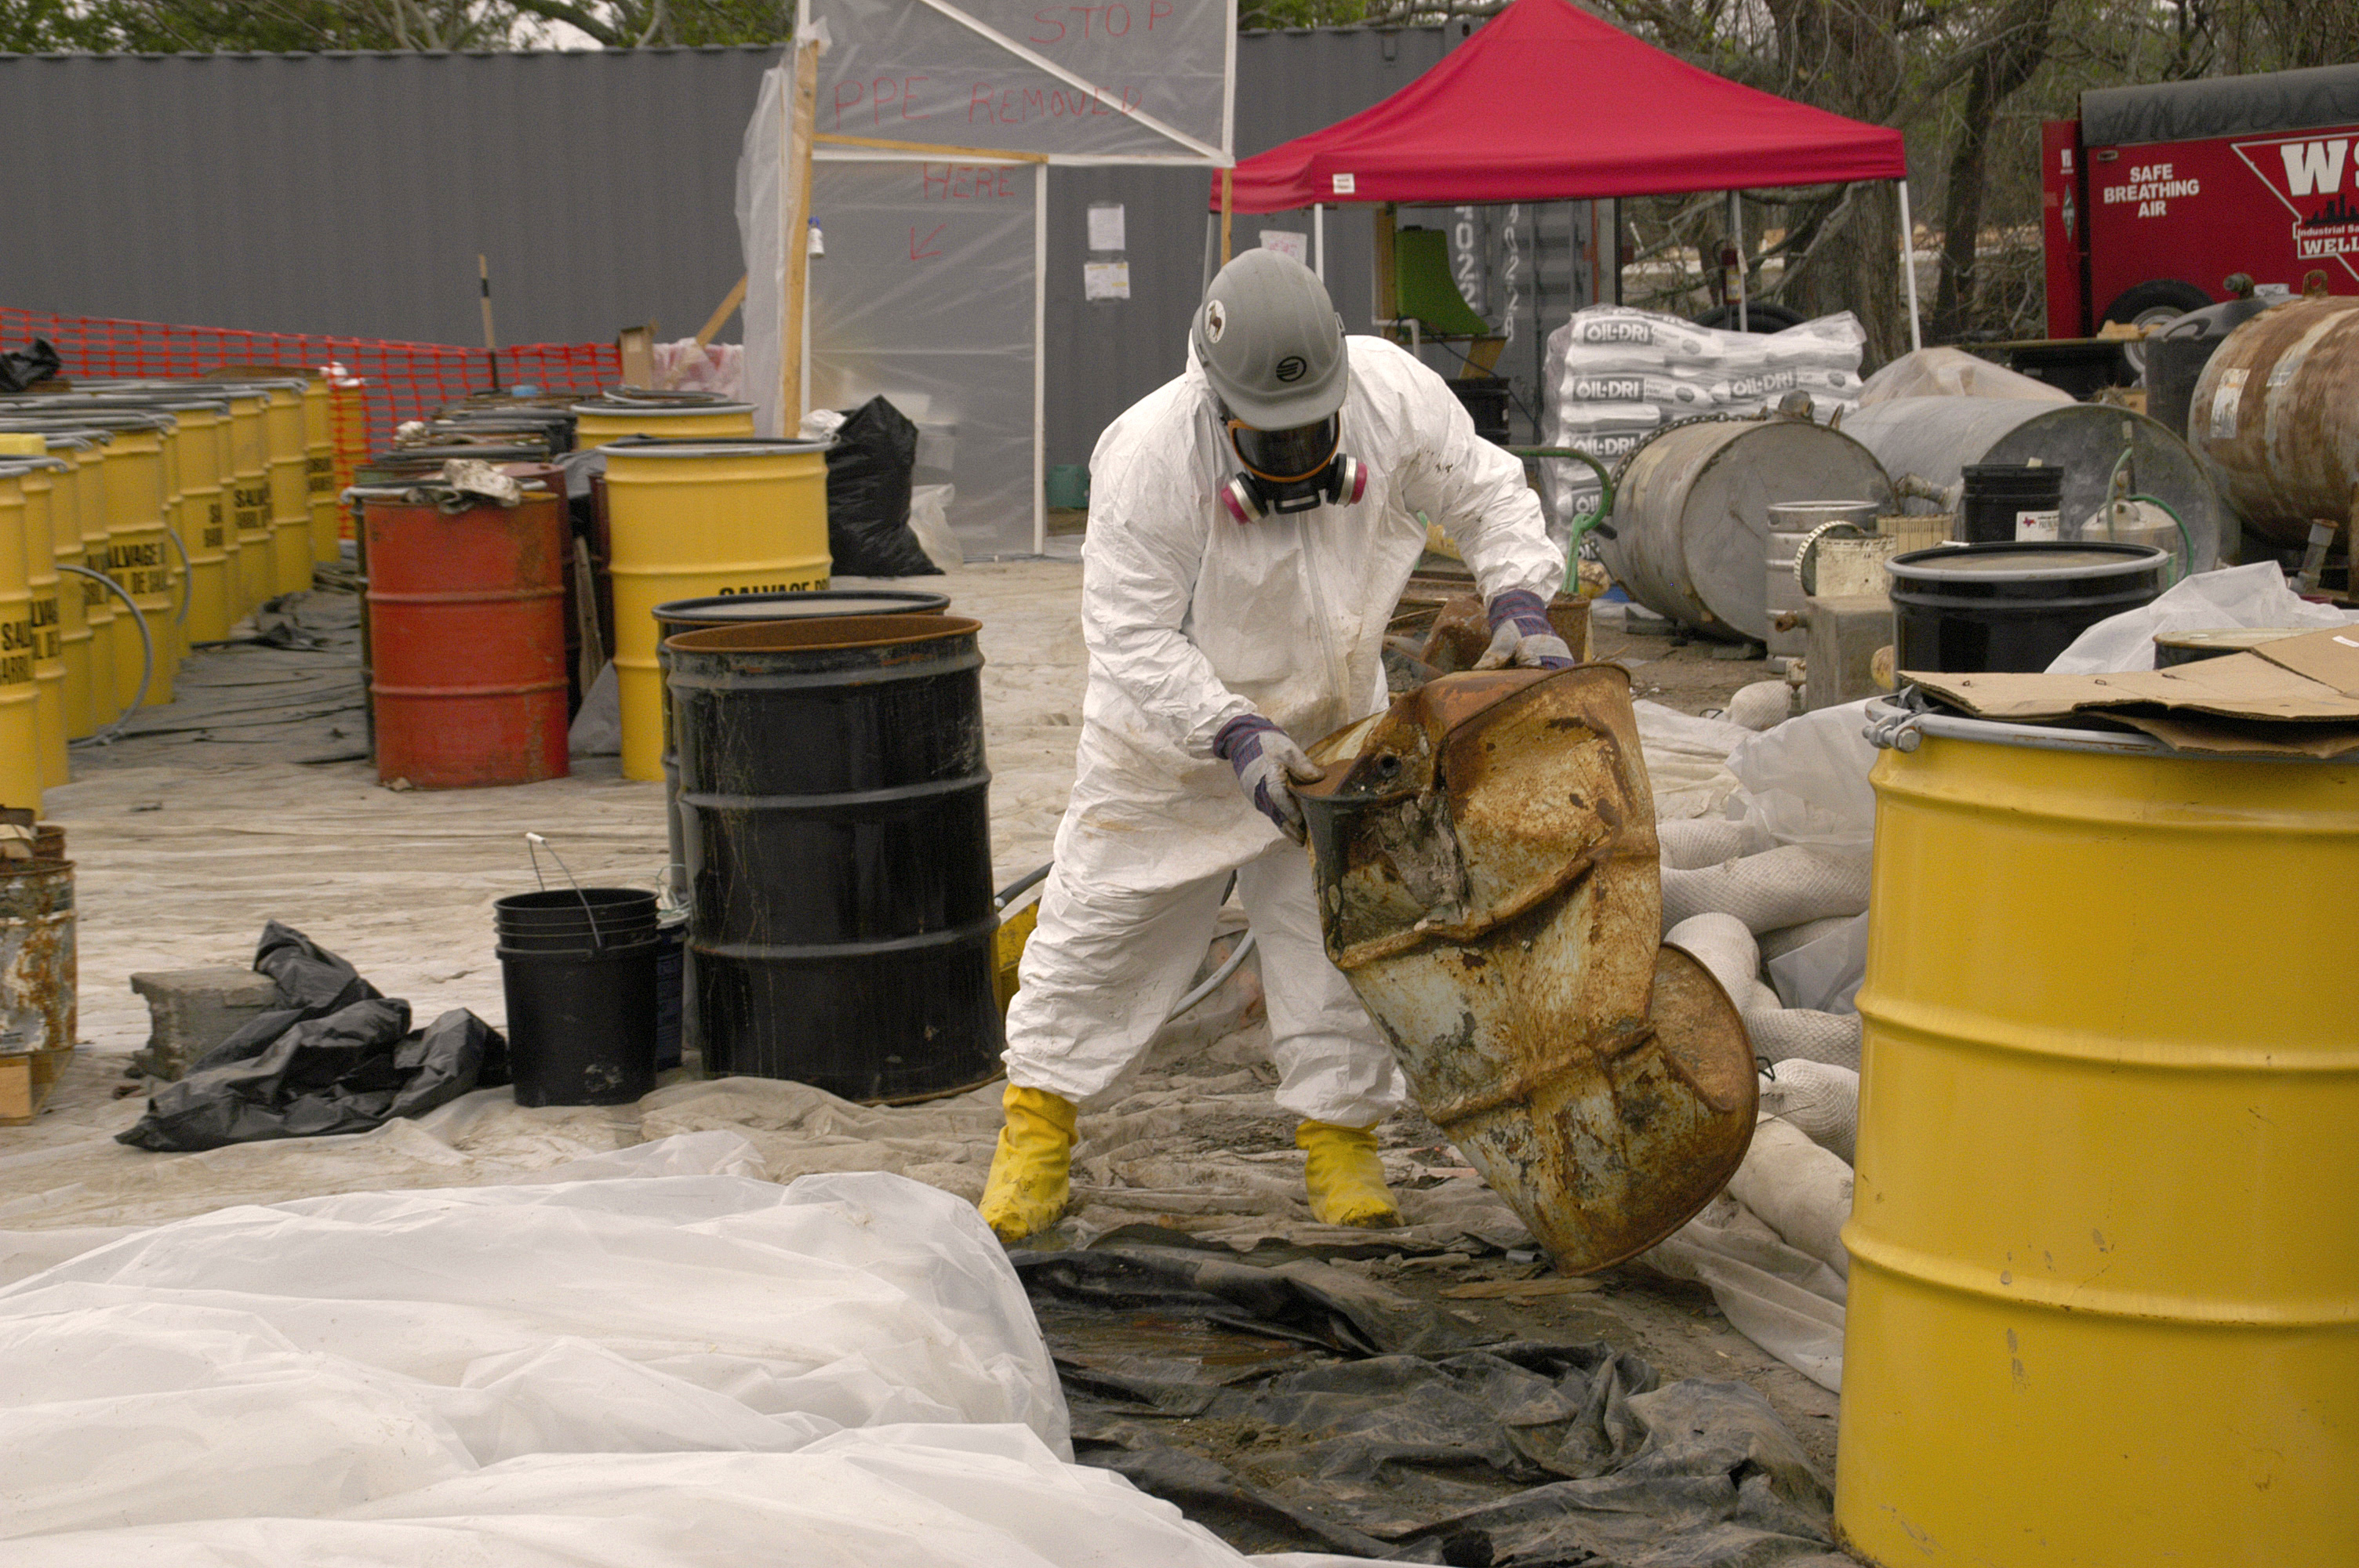 A worker checks a potentially hazardous barrel to determine its contents